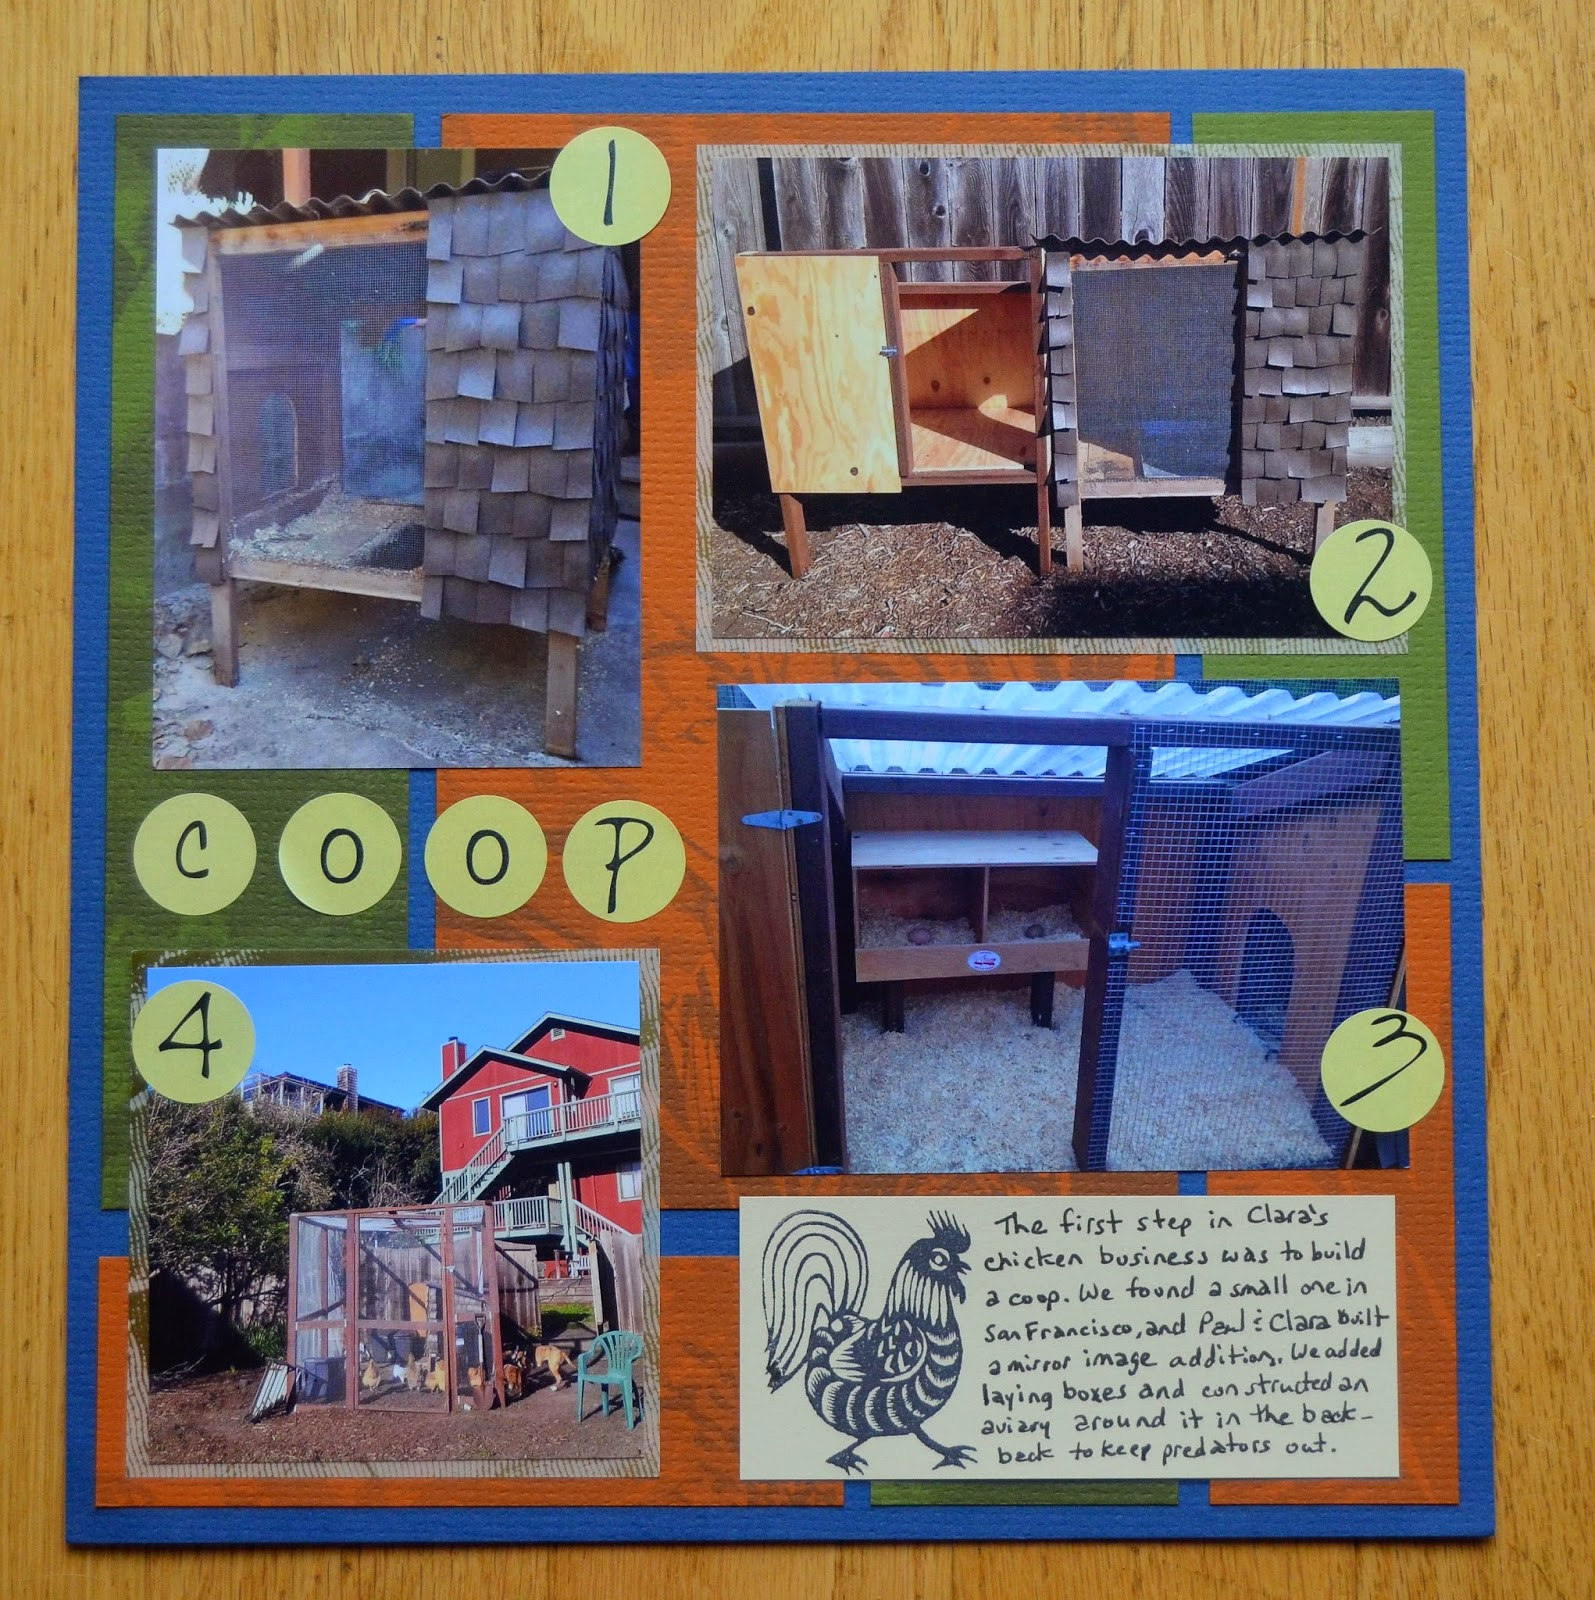 How to start scrapbook business - They Are Somewhat Related In That Clara Did Start Her Egg Business As Part Of Ffa The Subject Of The First Layout